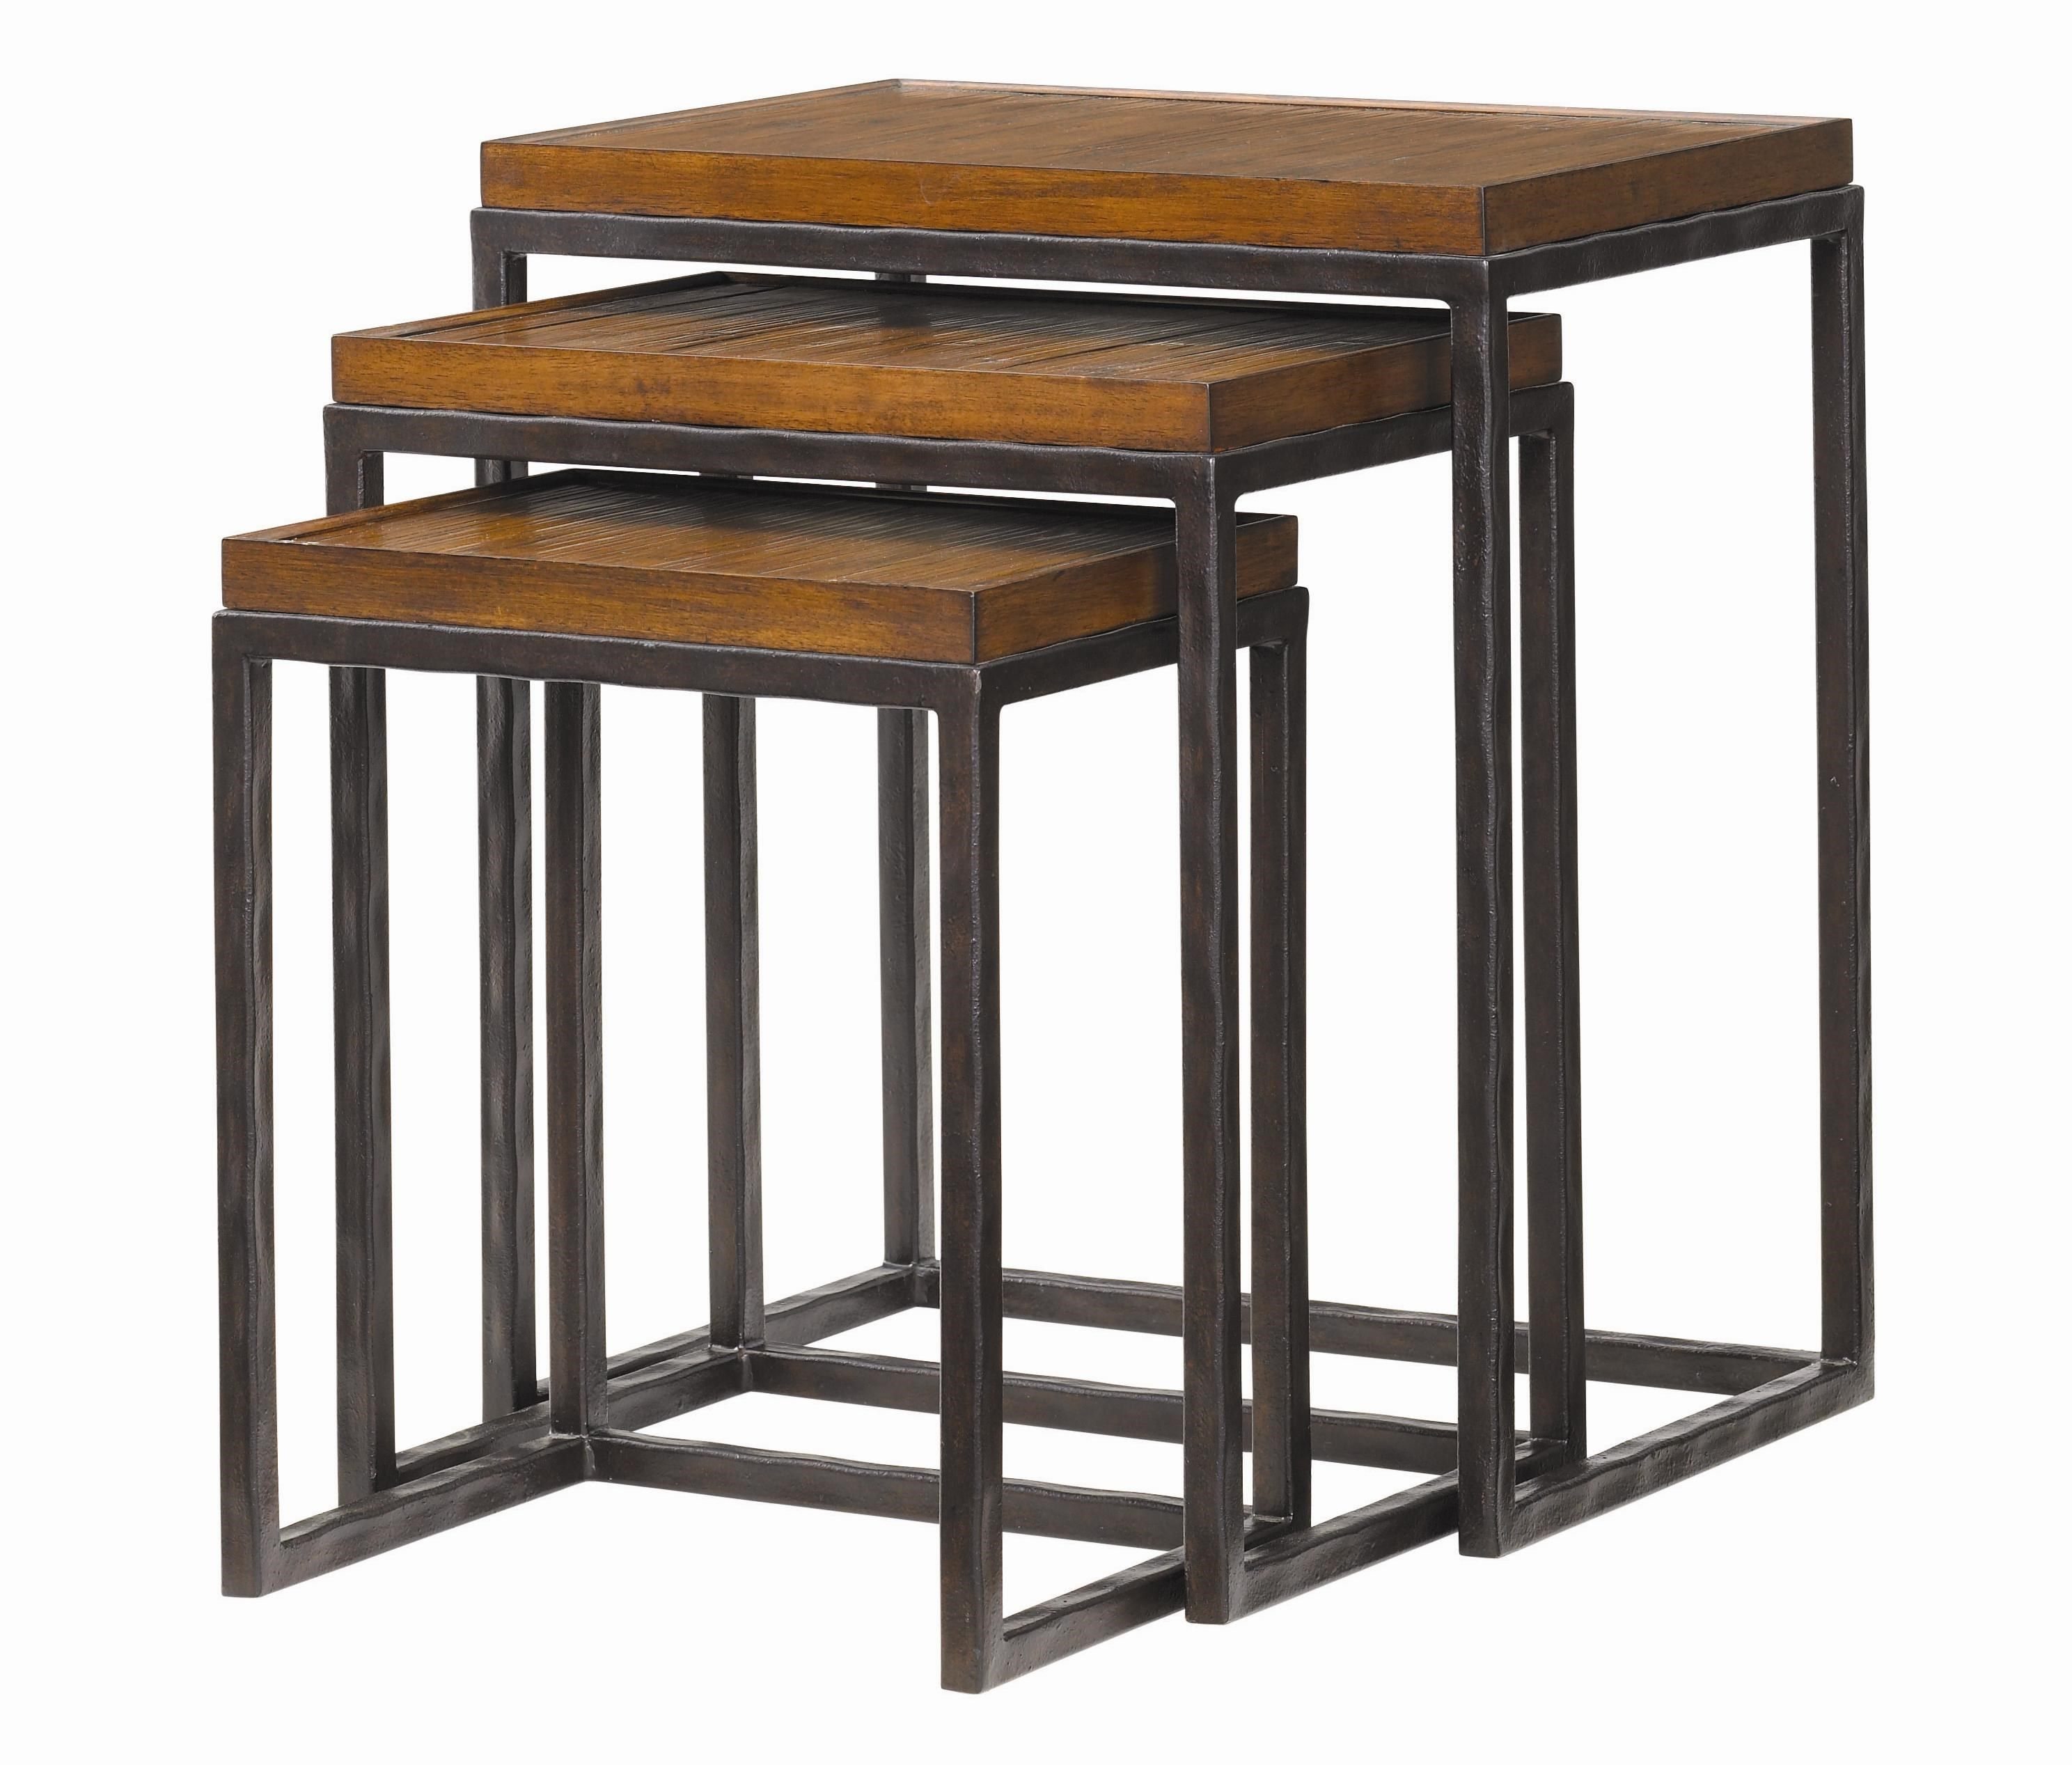 Tommy Bahama Home Ocean Club 536-942 Ocean Reef Nesting Tables : Baeru0026#39;s Furniture : End Table ...